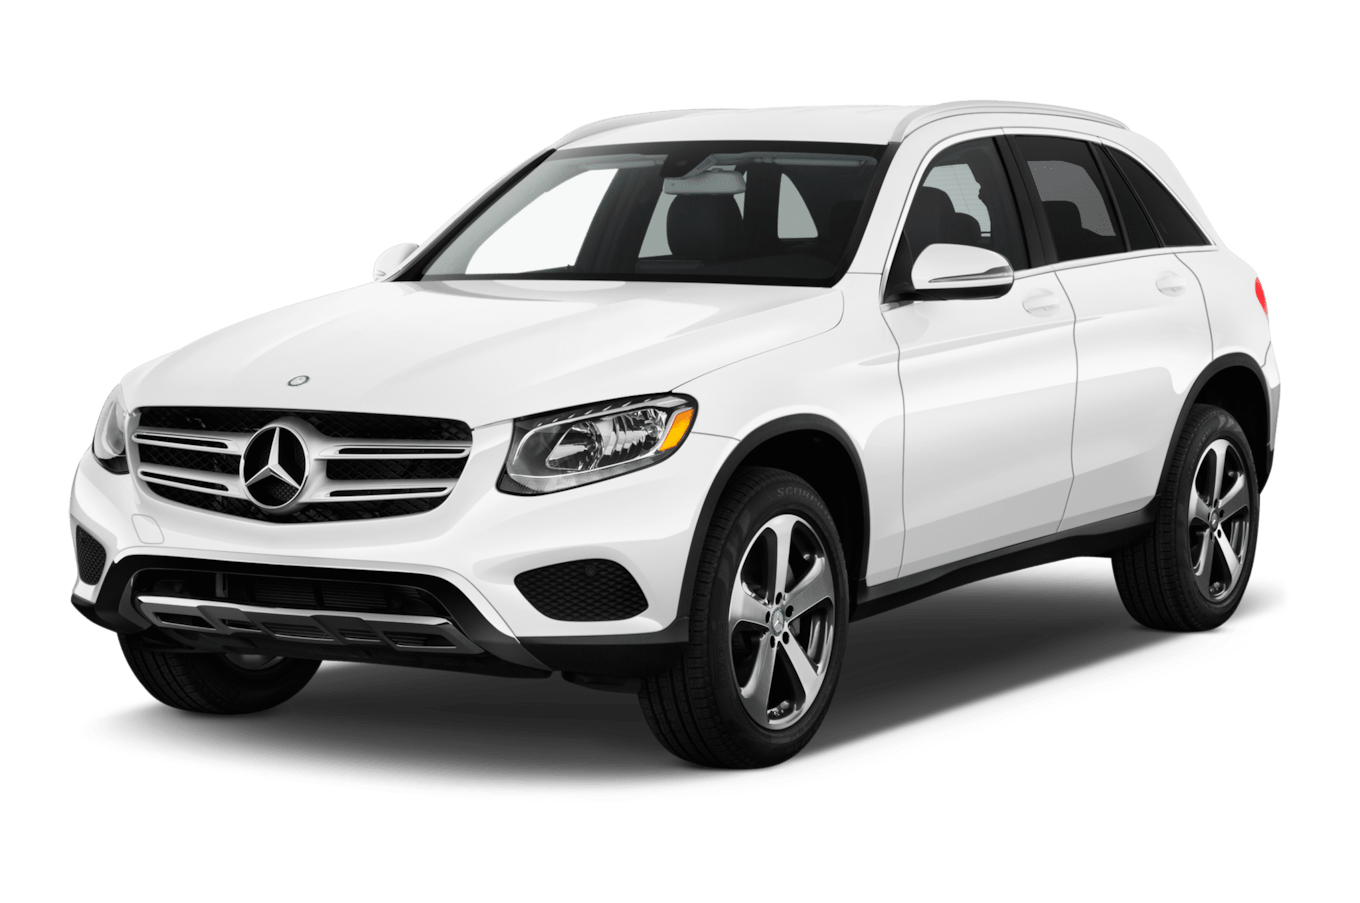 Mercedes Suv 2016 2016 Mercedes Benz Glc Class Reviews And Rating Motor Trend